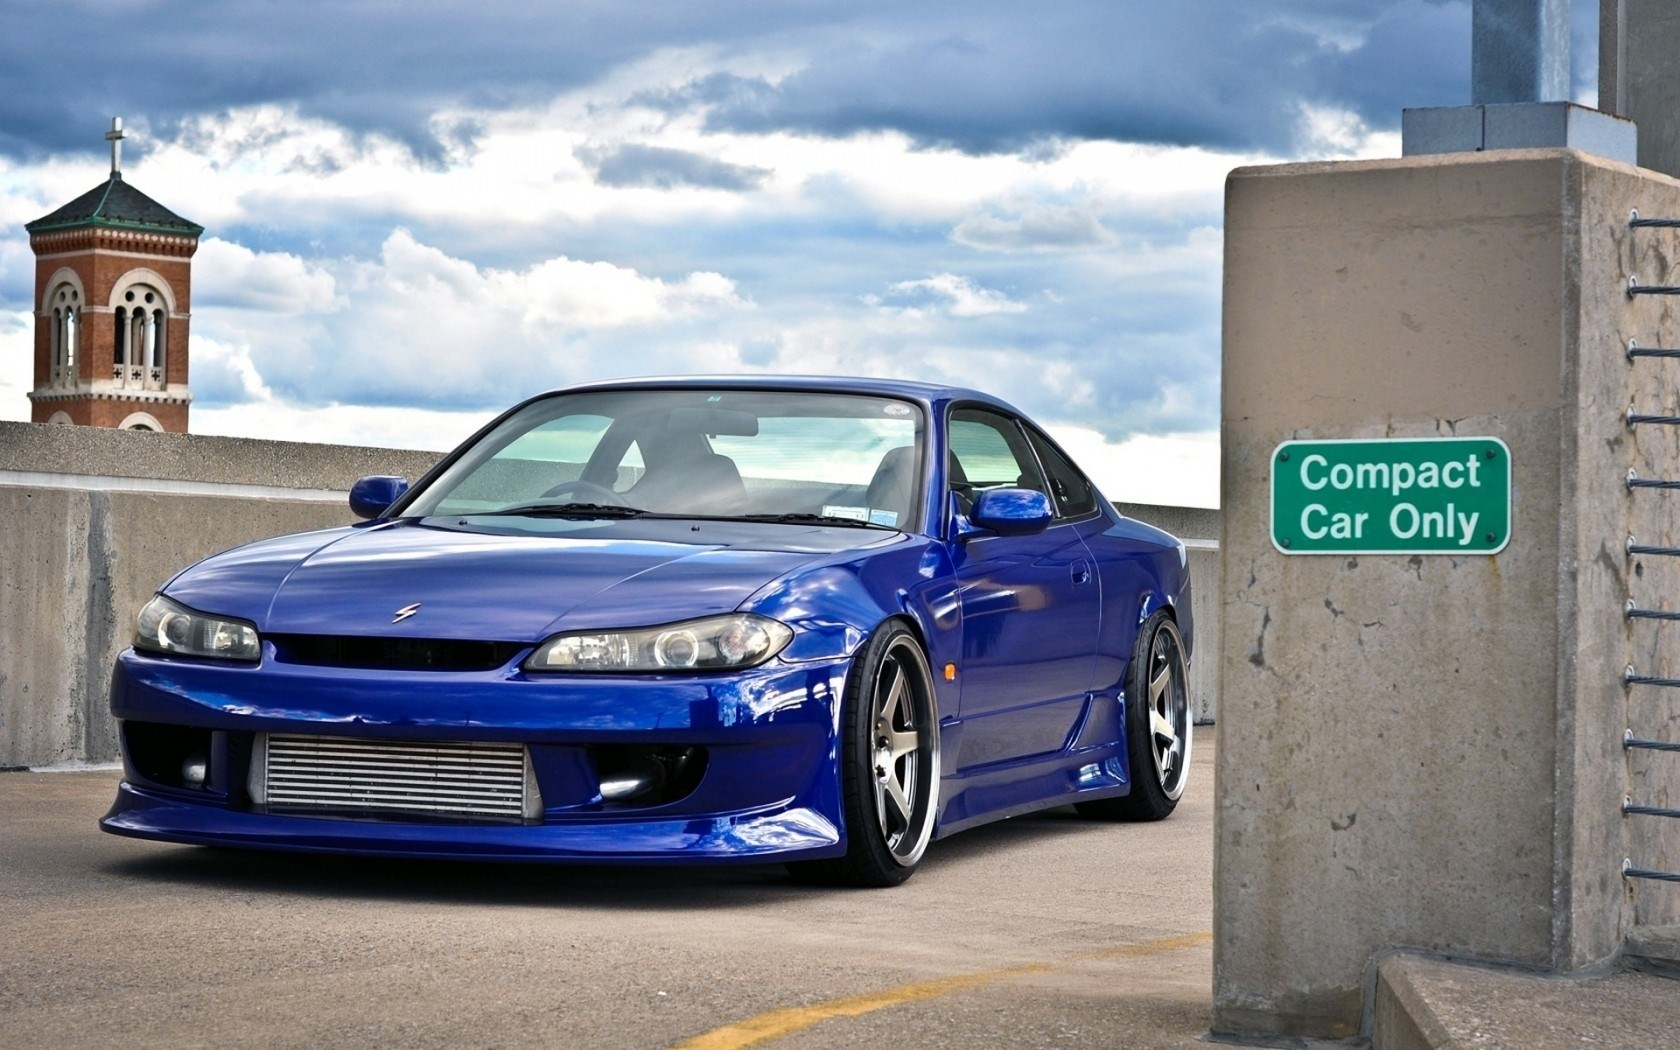 Blue Nissan Silvia Wallpaper